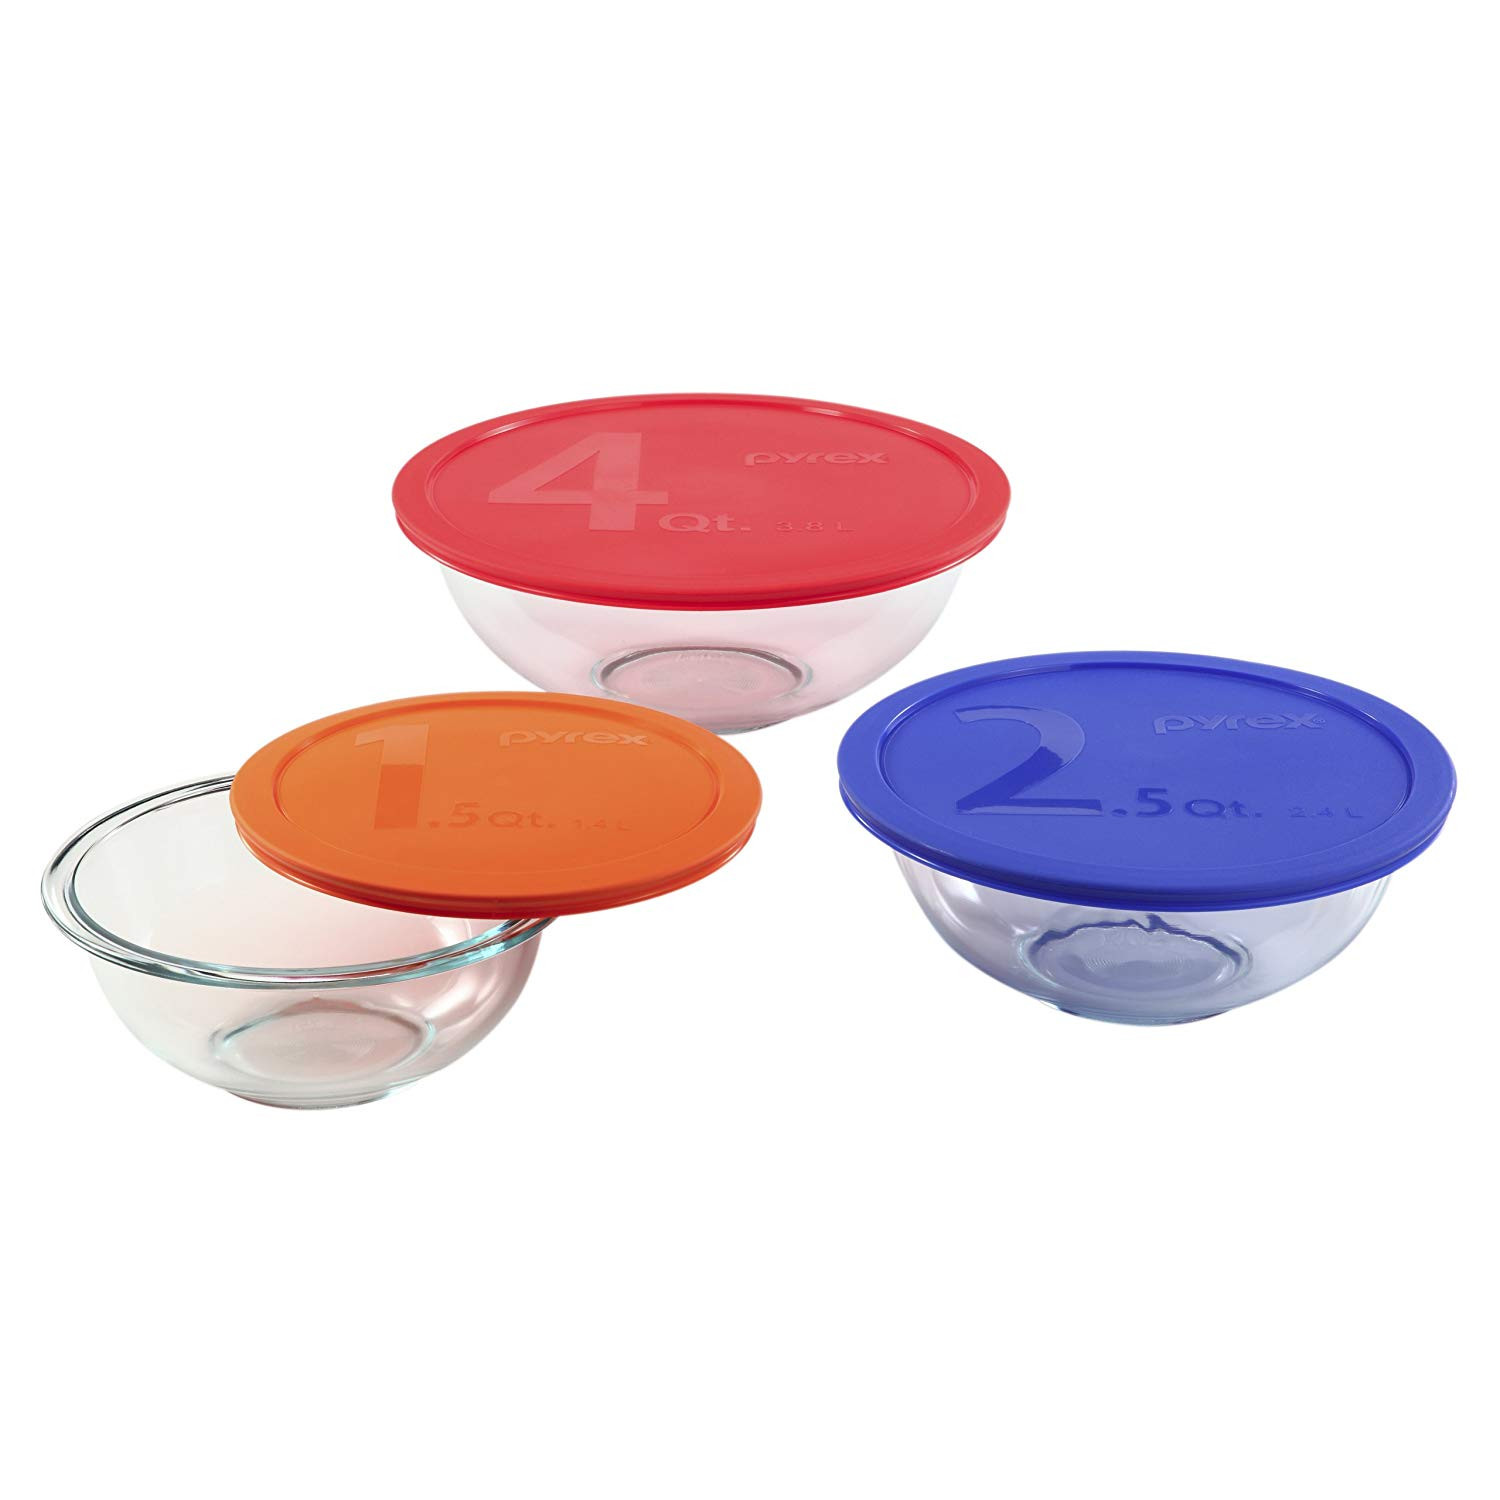 cracked glass vases wholesale of amazon com pyrex 1085308 smart essentials 6 piece mixing bowl set inside amazon com pyrex 1085308 smart essentials 6 piece mixing bowl set bowls